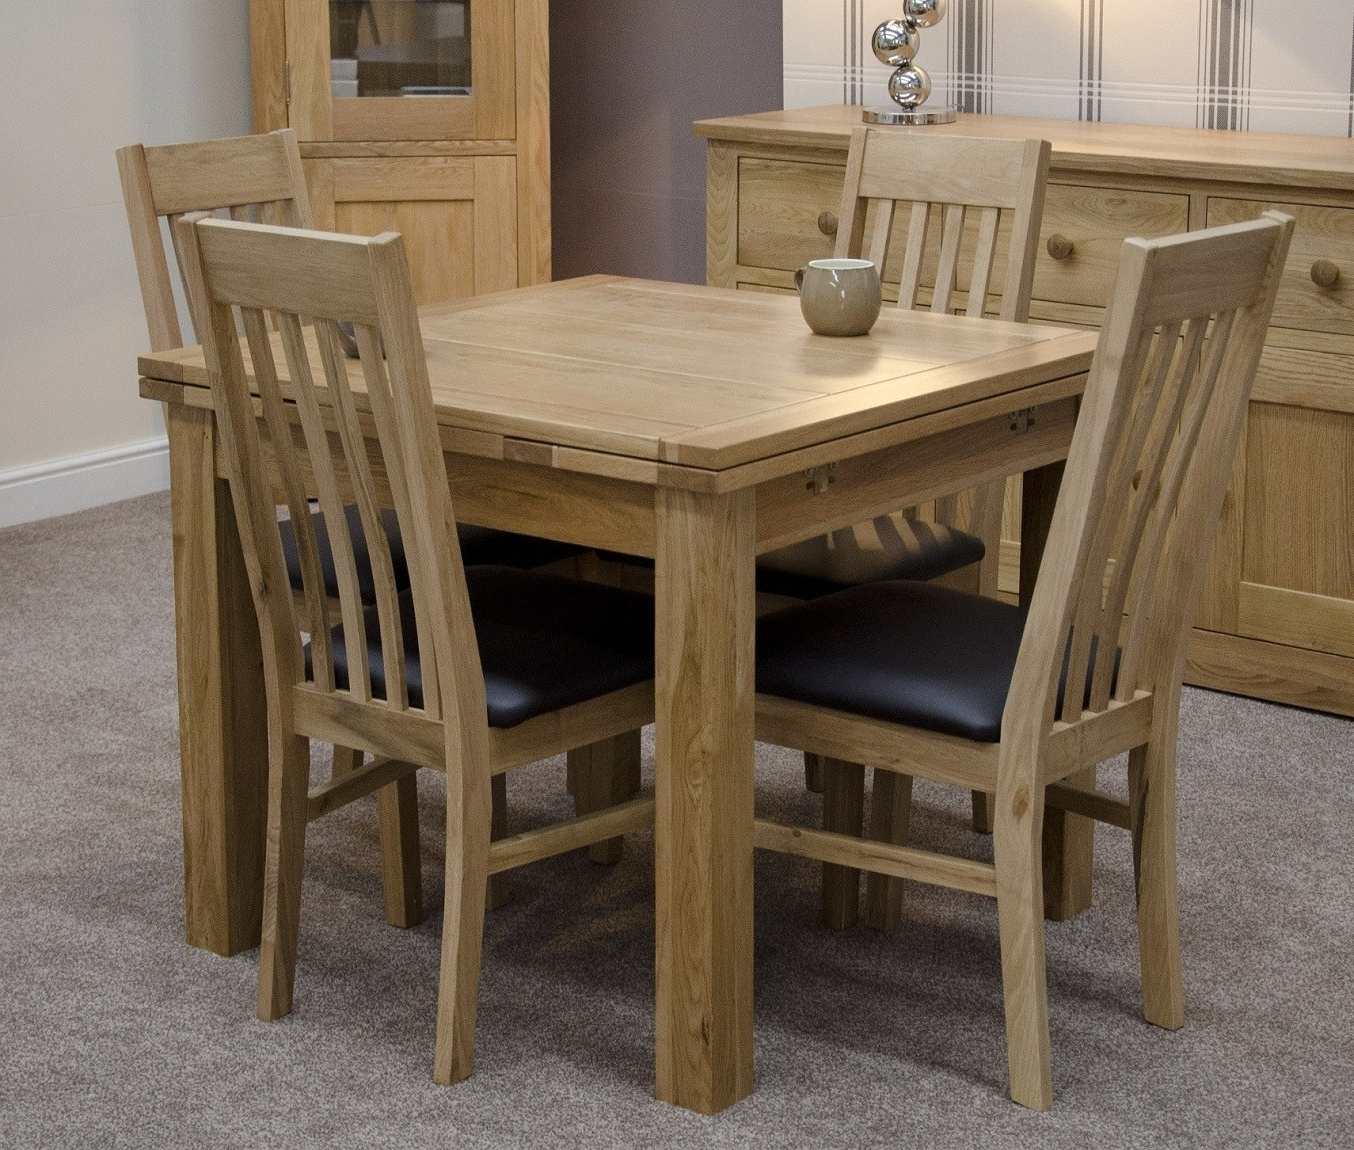 Oak Furniture Uk (View 18 of 25)